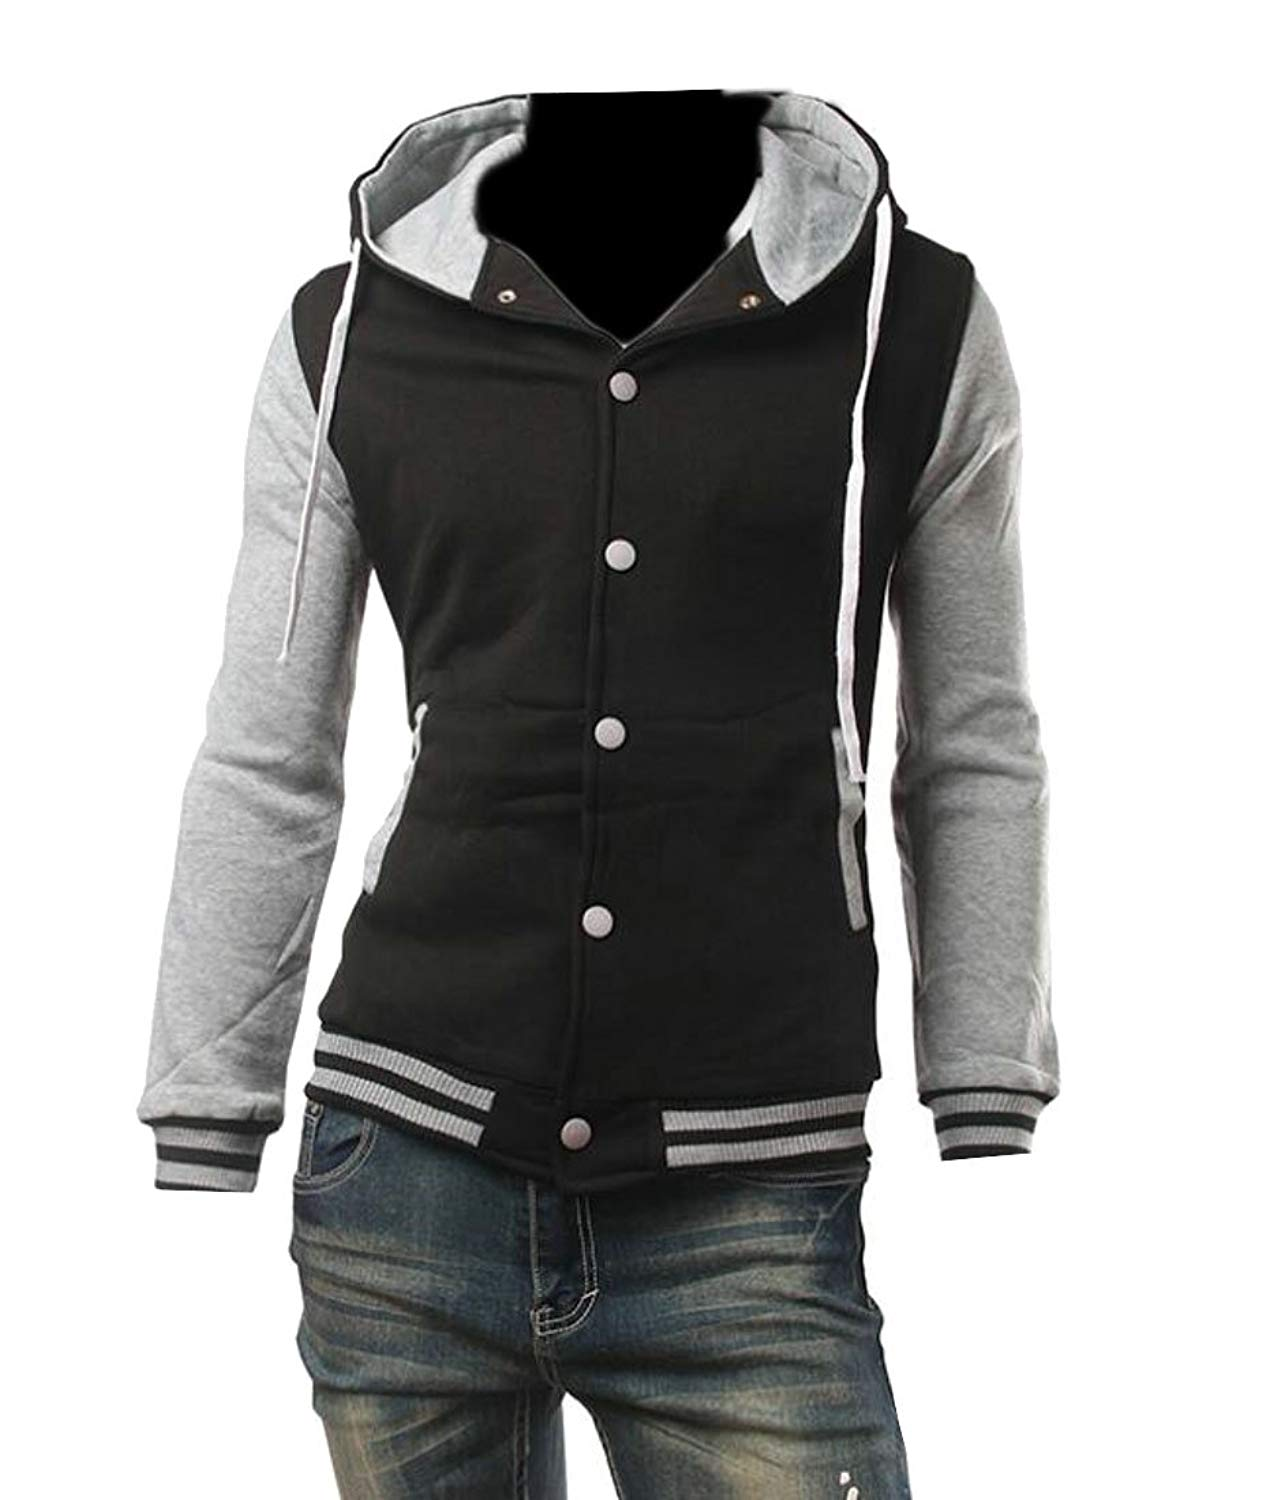 62f099946bb8 Get Quotations · UUYUK-Men Outwear Button Front Hoodie Sweatshirt Jacket  Coat